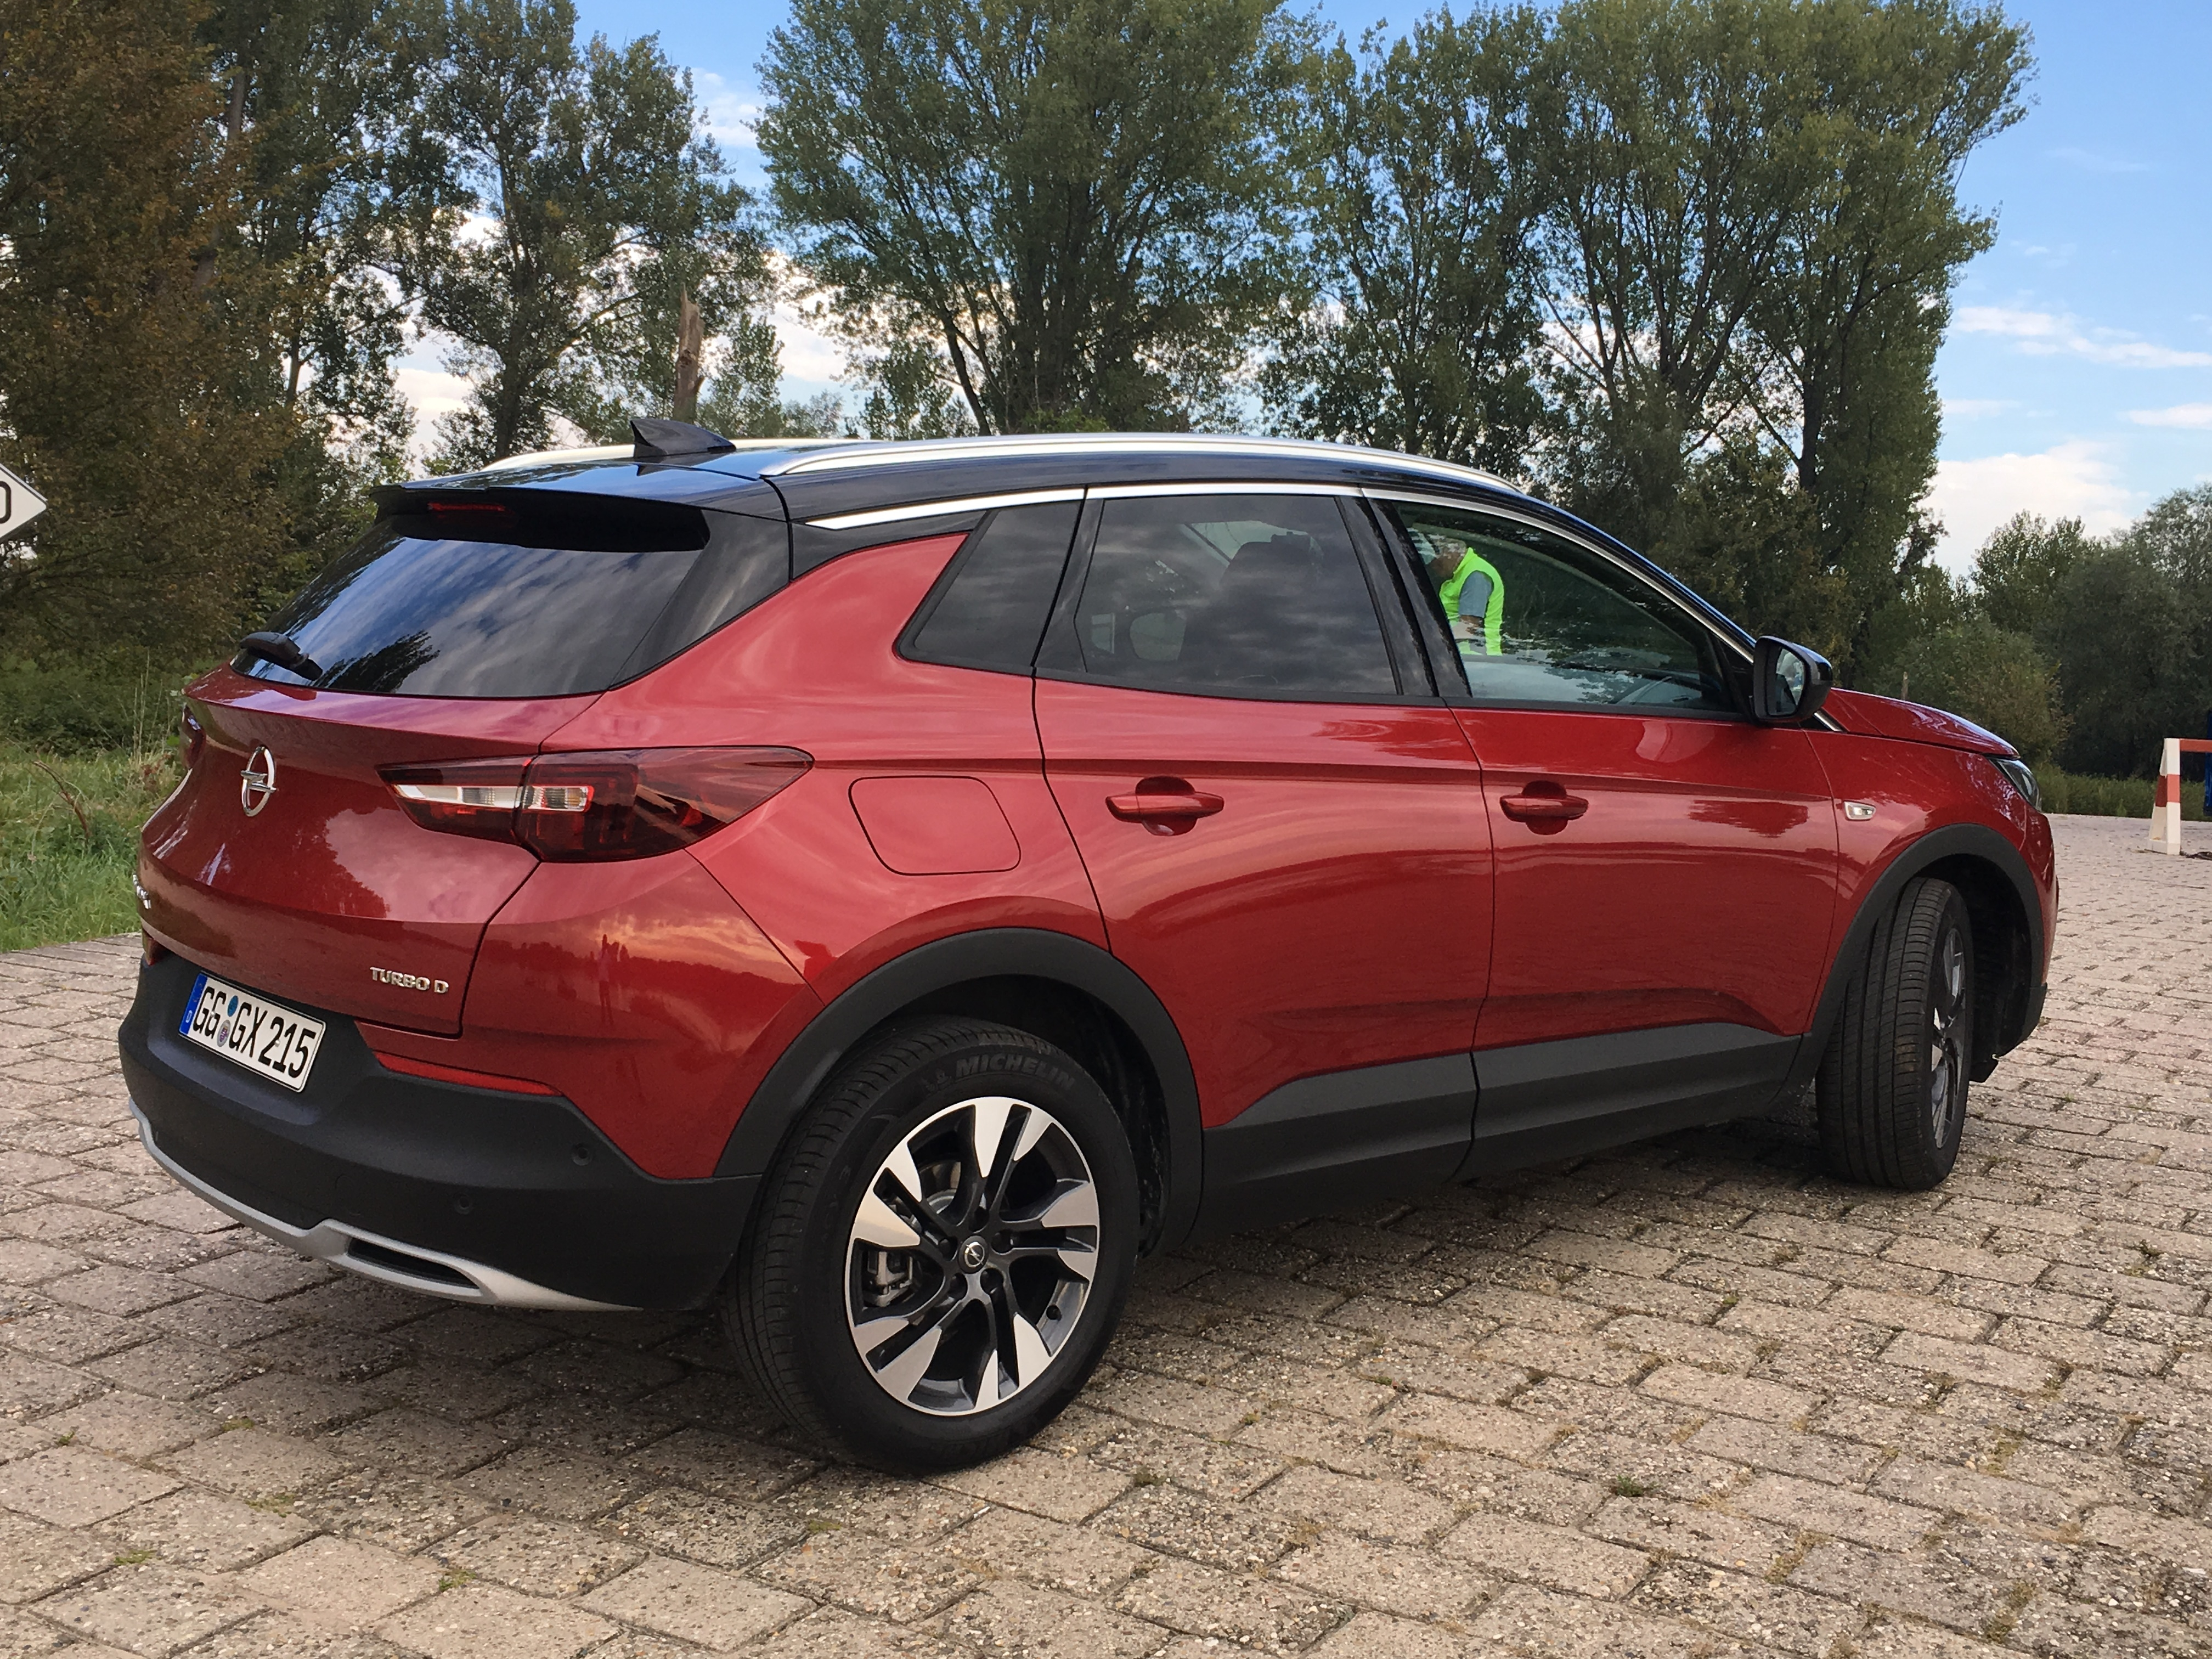 opel grandland x les premi res images de l 39 essai en live impressions de conduite. Black Bedroom Furniture Sets. Home Design Ideas